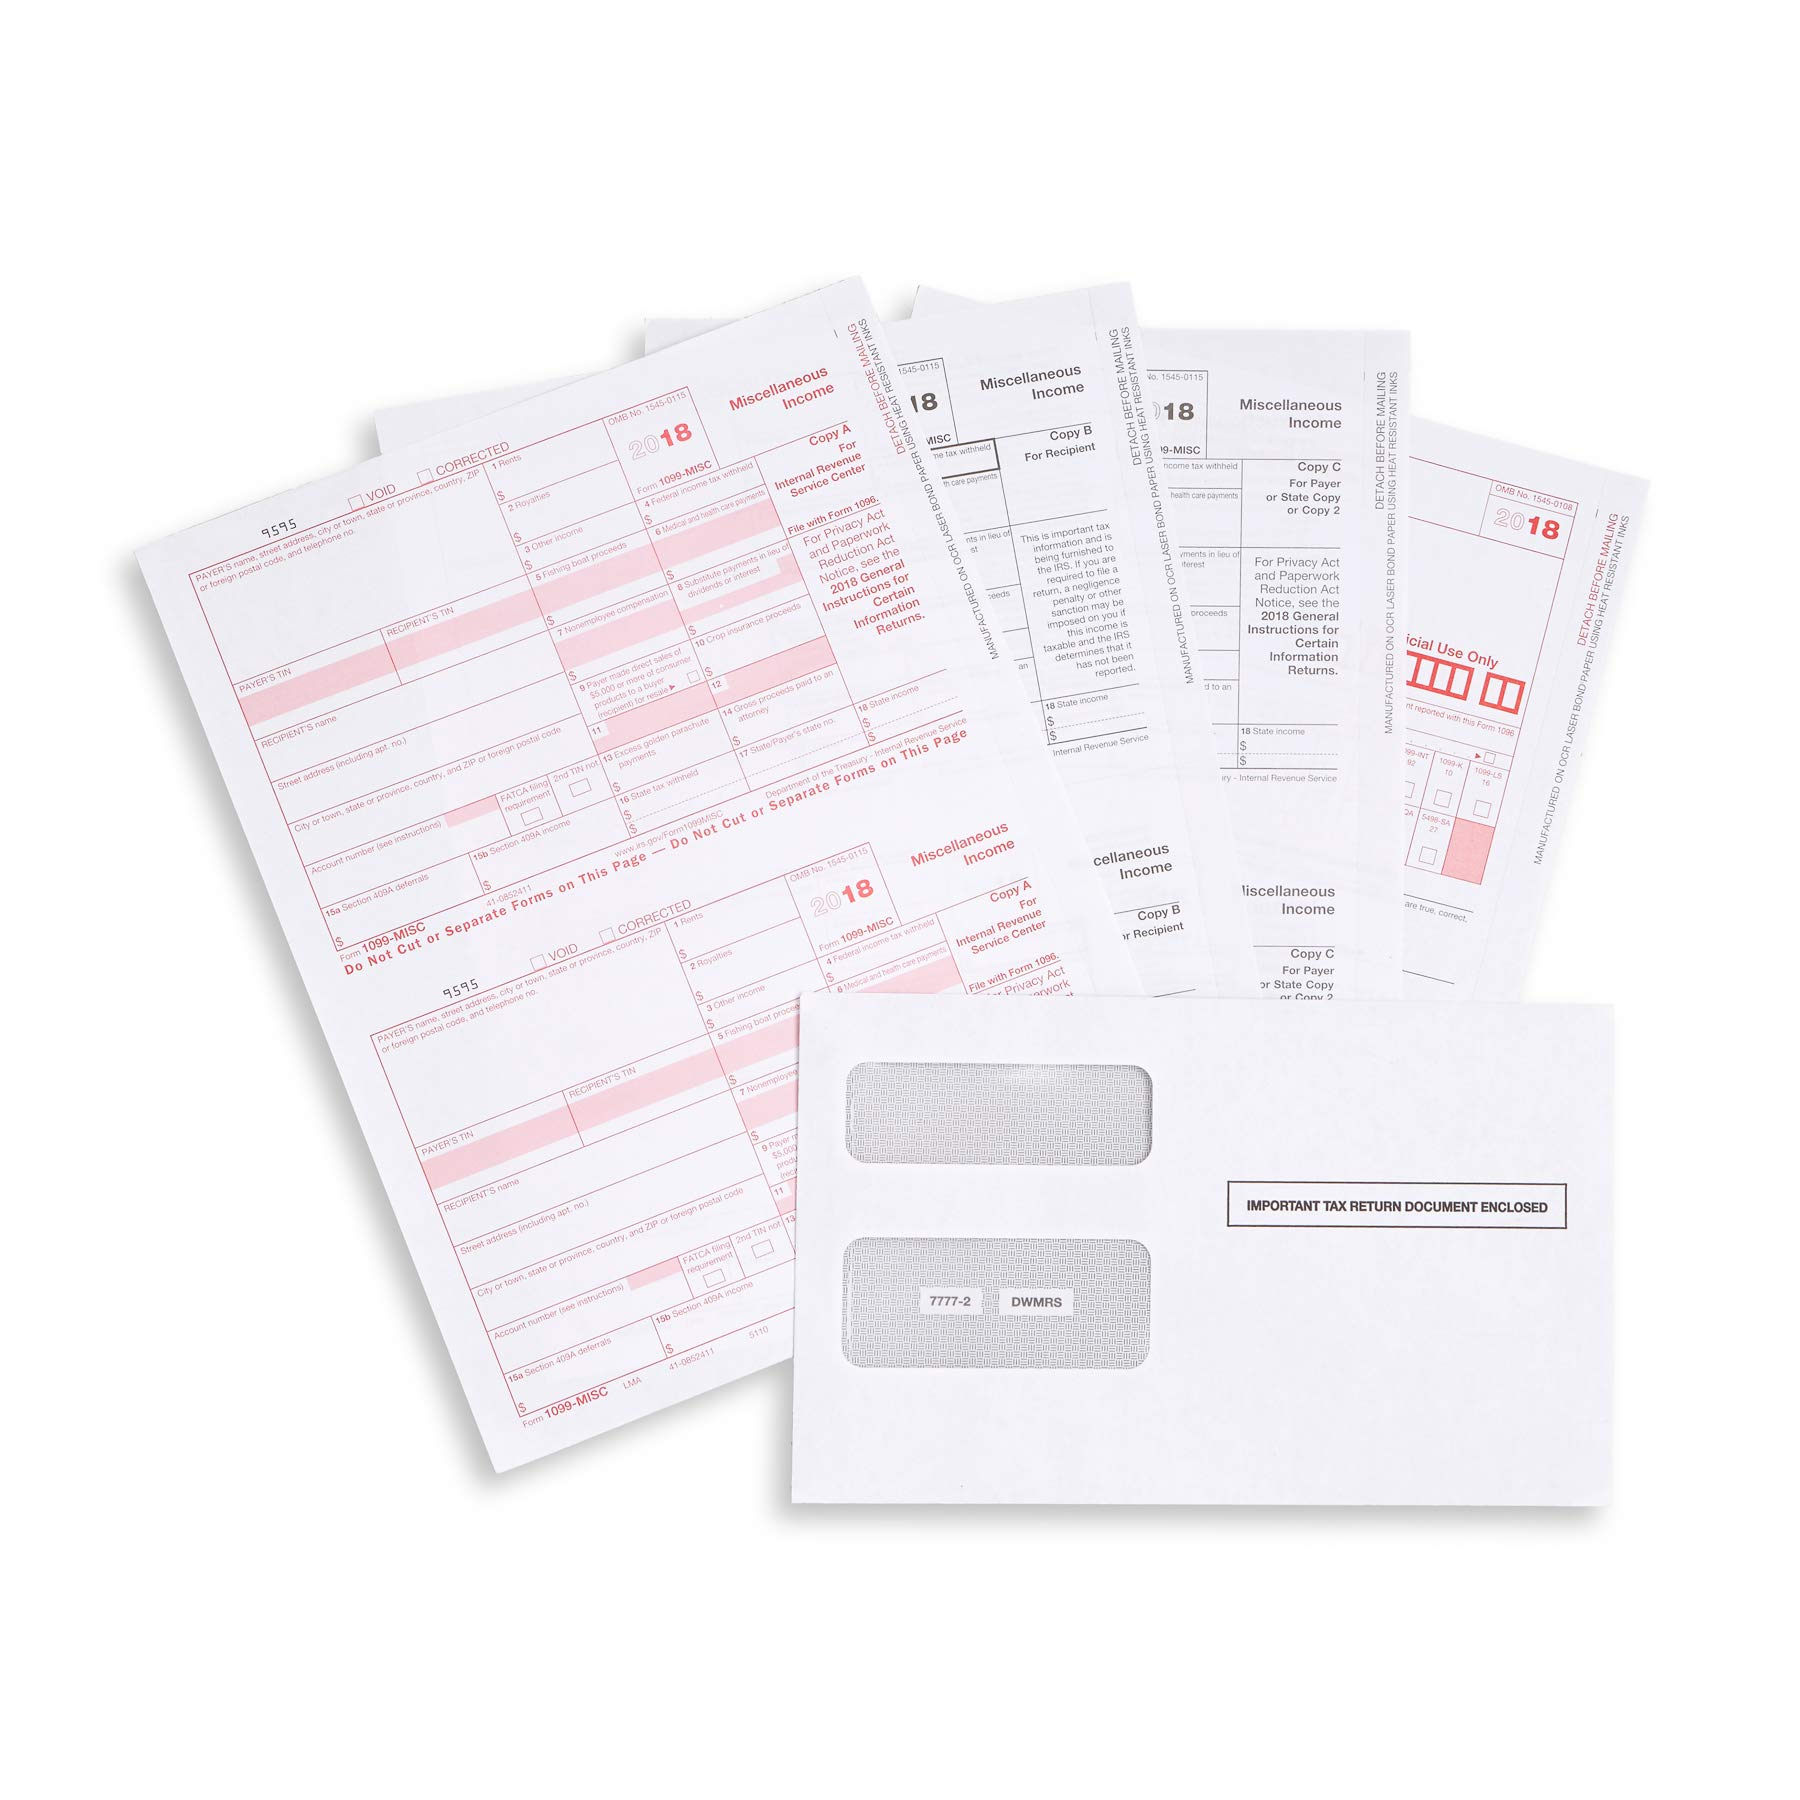 1099 MISC 4 Part 2018 Tax Forms Kit, 25 Vendor Kit of Laser Forms Designed for QuickBooks and Accounting Software, 25 Self Seal Envelopes Included